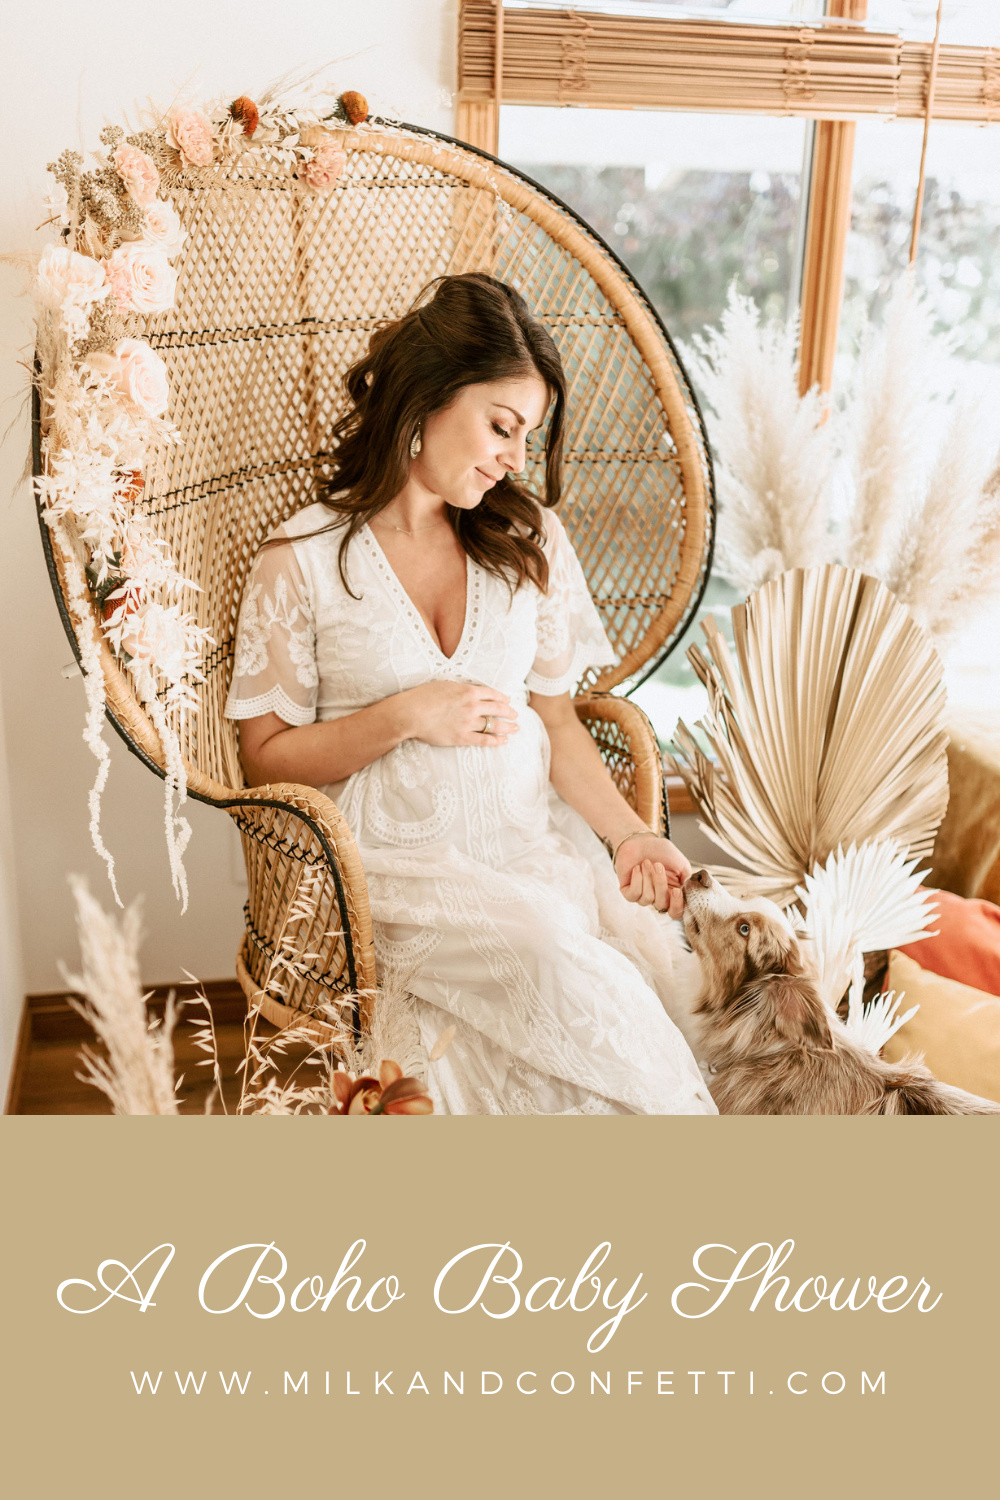 All the dreamy details you need to host a boho baby shower with pampas grasses, velvet pillows, wicker rattan chairs and elegant florals.